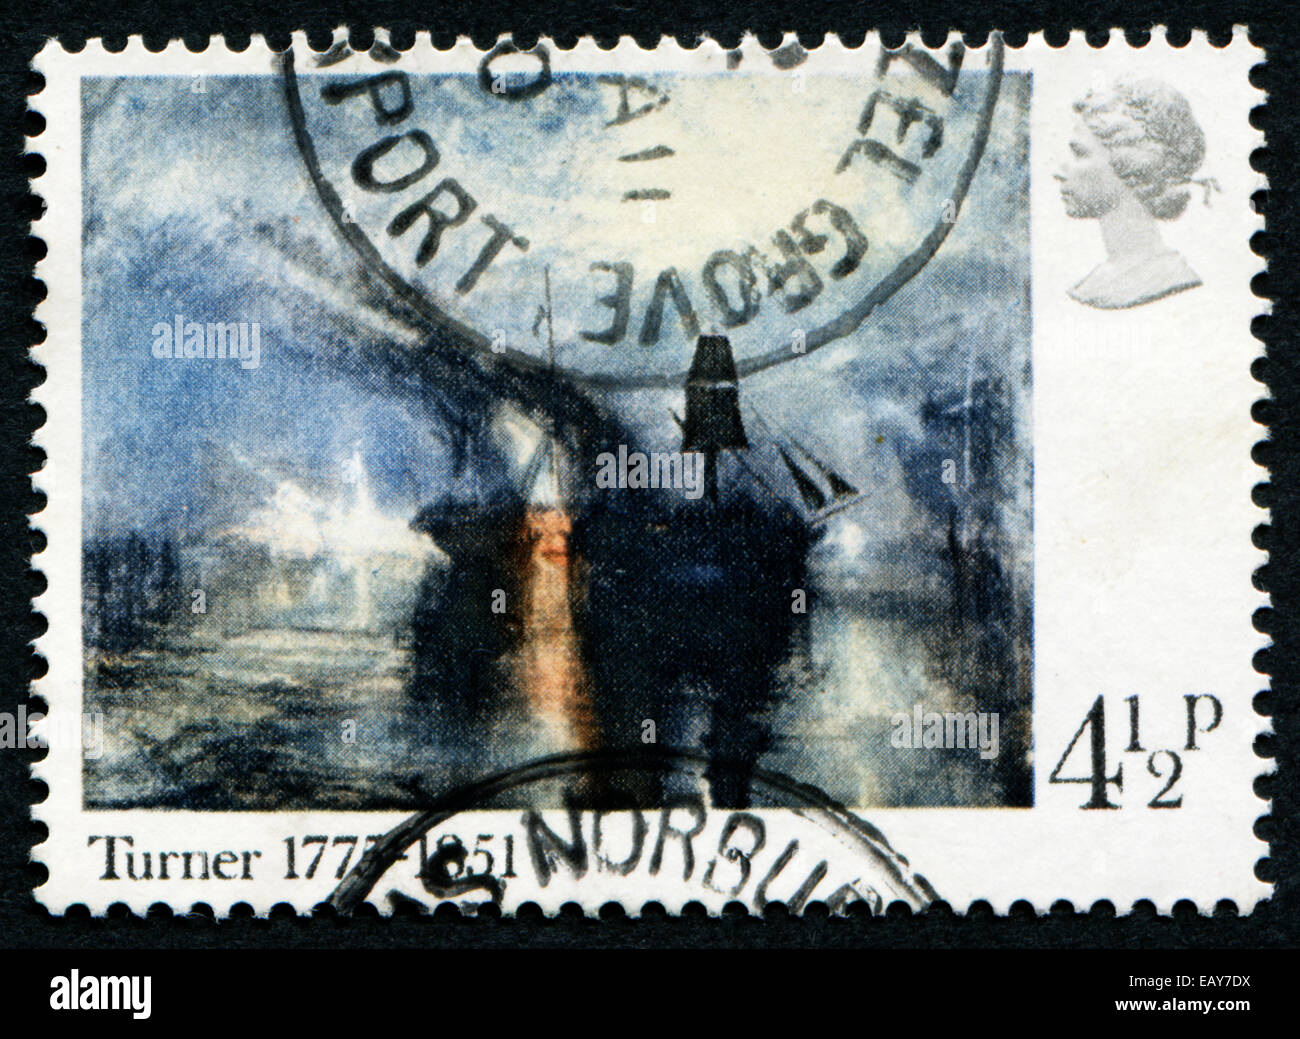 UNITED KINGDOM - CIRCA 1975: A stamp printed in Great Britain shows a picture by Turner, to commemorate the 200th - Stock Image